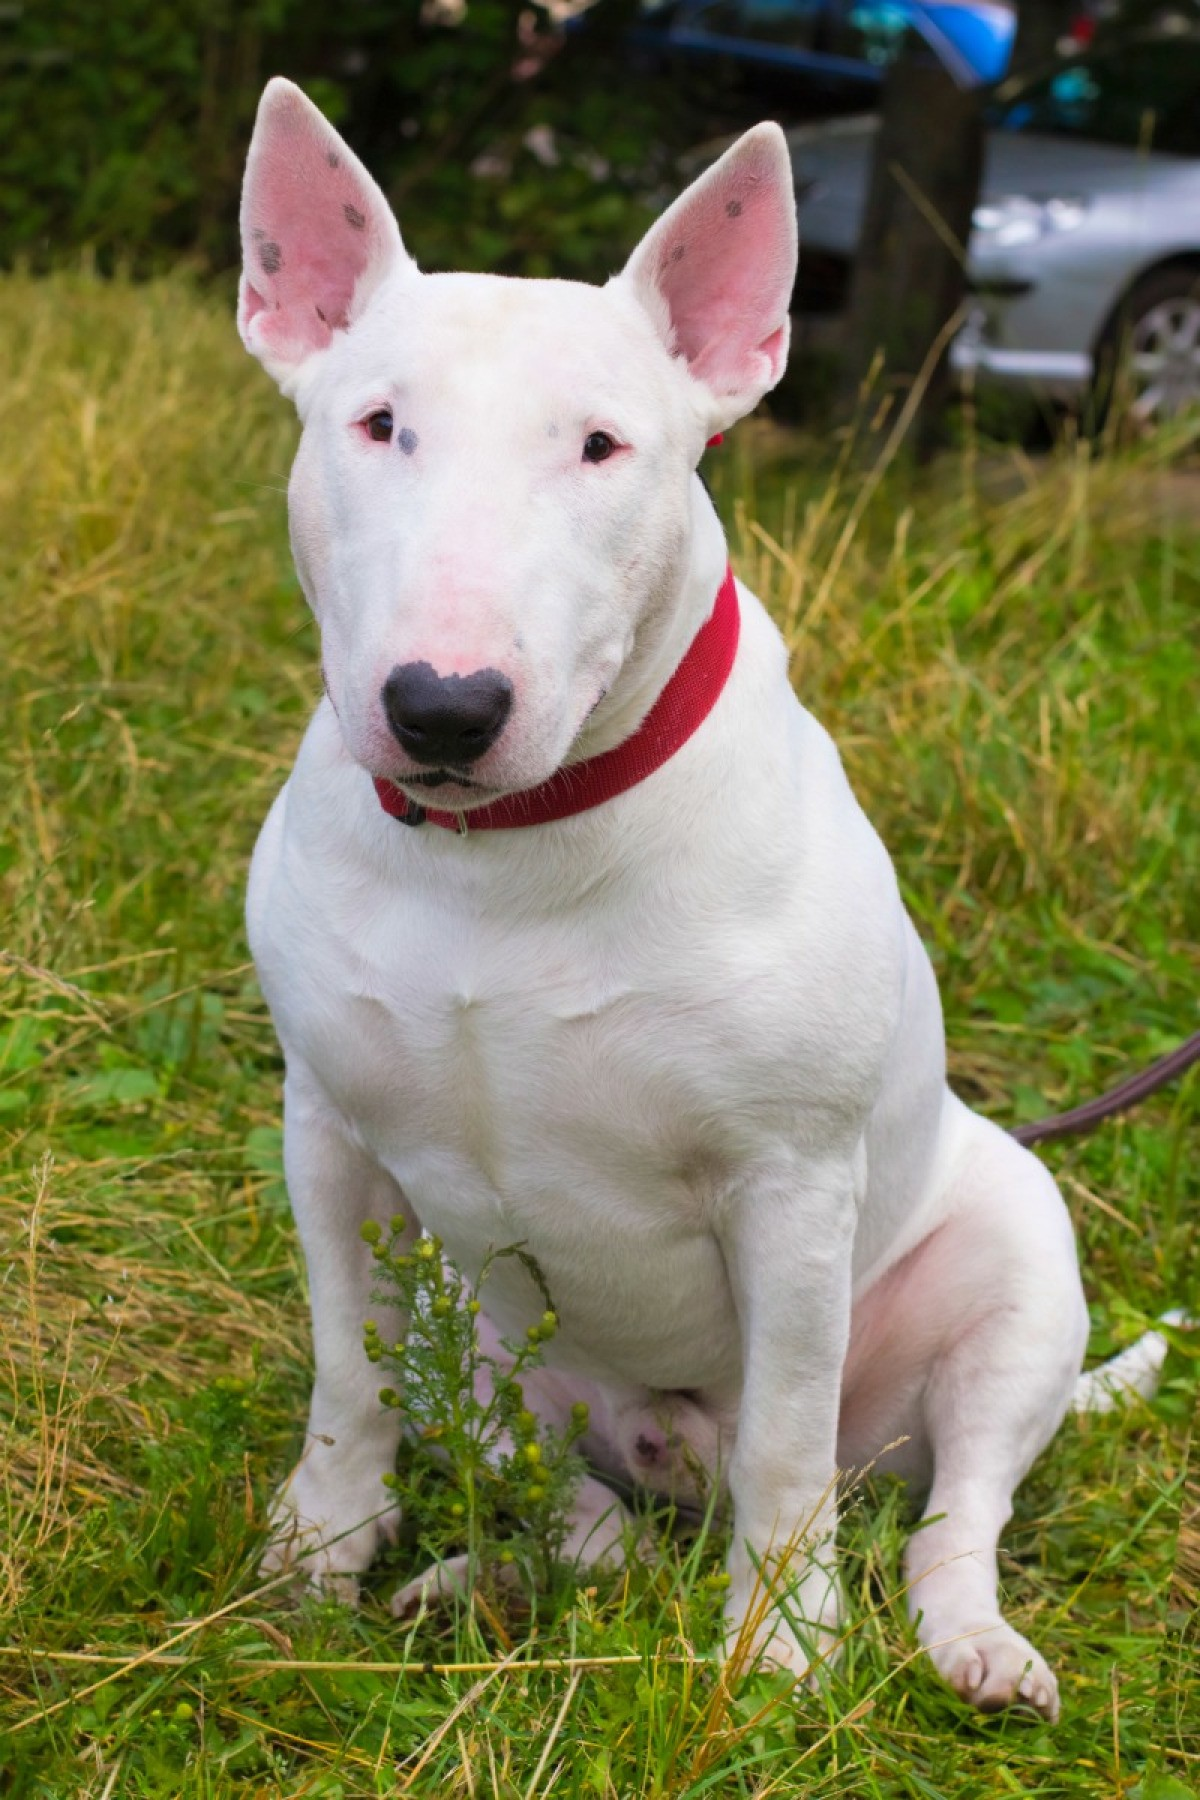 Bull Terrier Breed Information and Photos | ThriftyFun